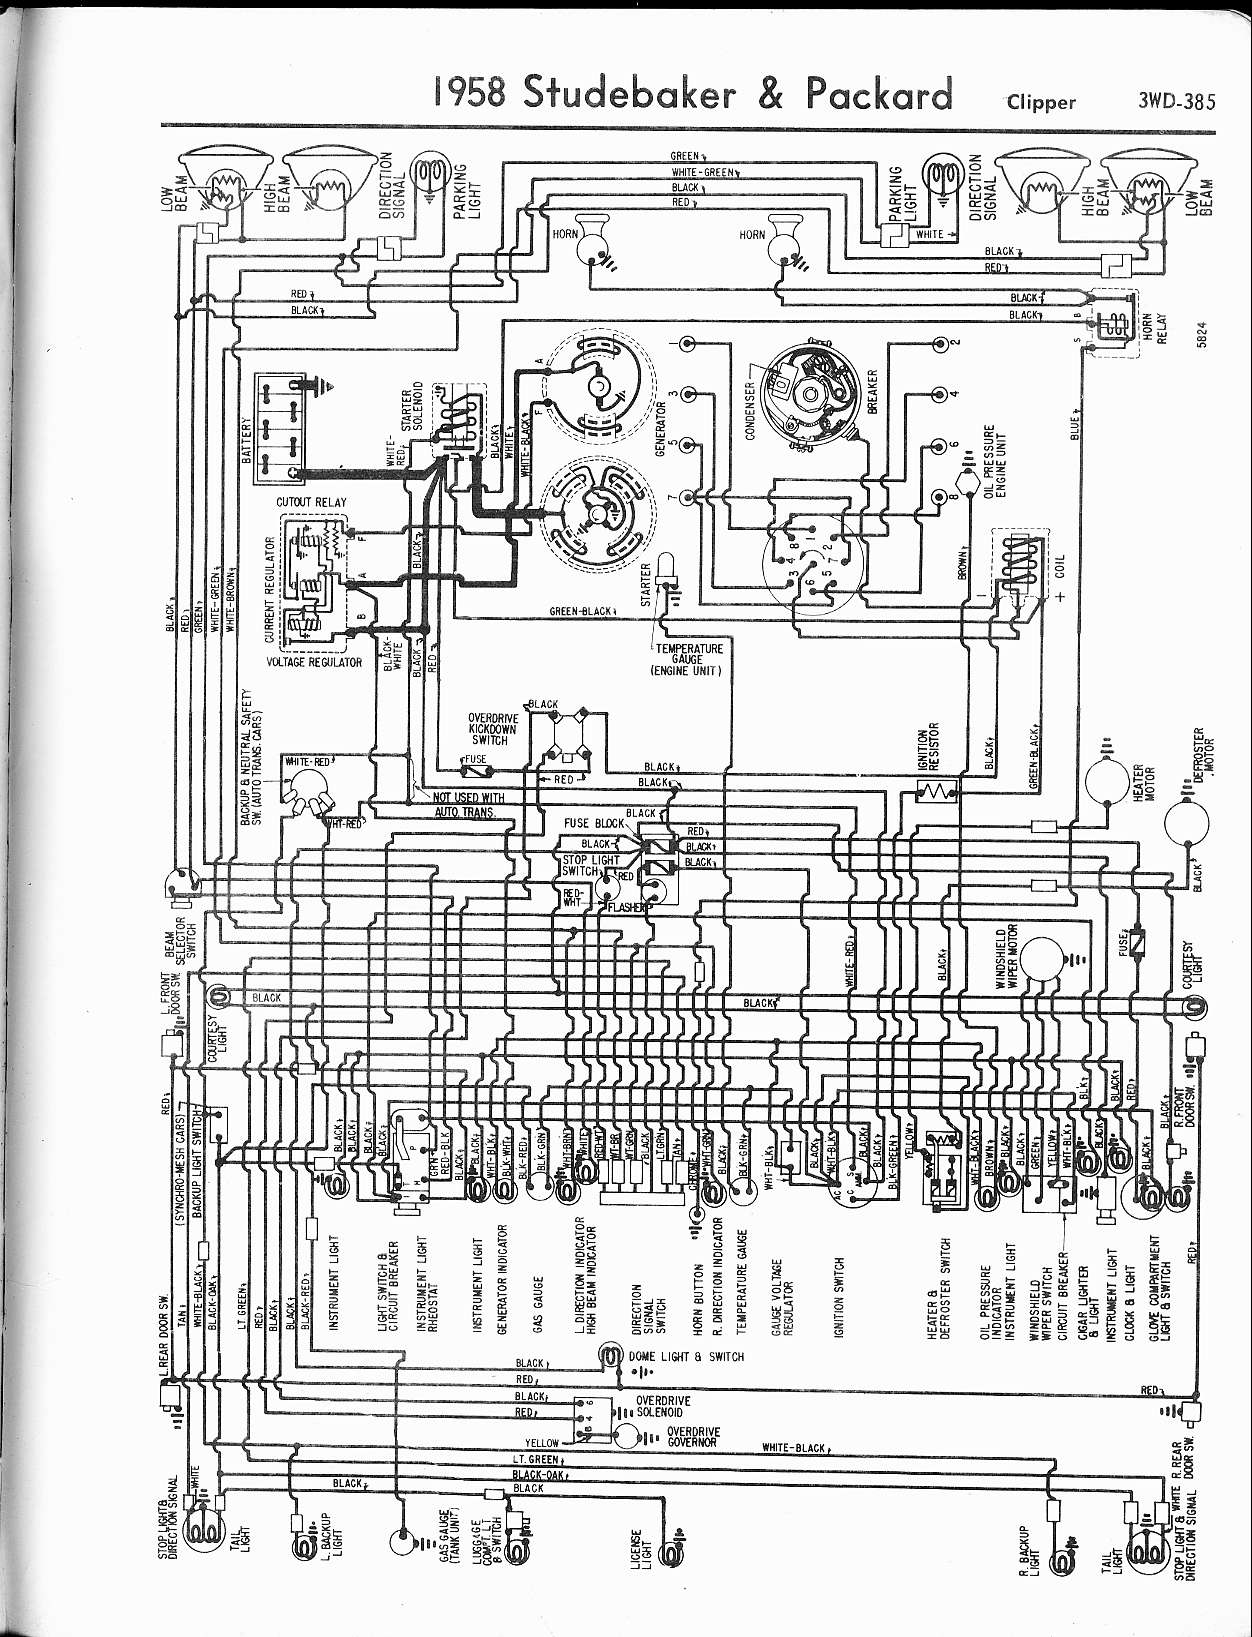 MWire5765 385 studebaker wiring diagrams the old car manual project studebaker wiring diagrams at soozxer.org